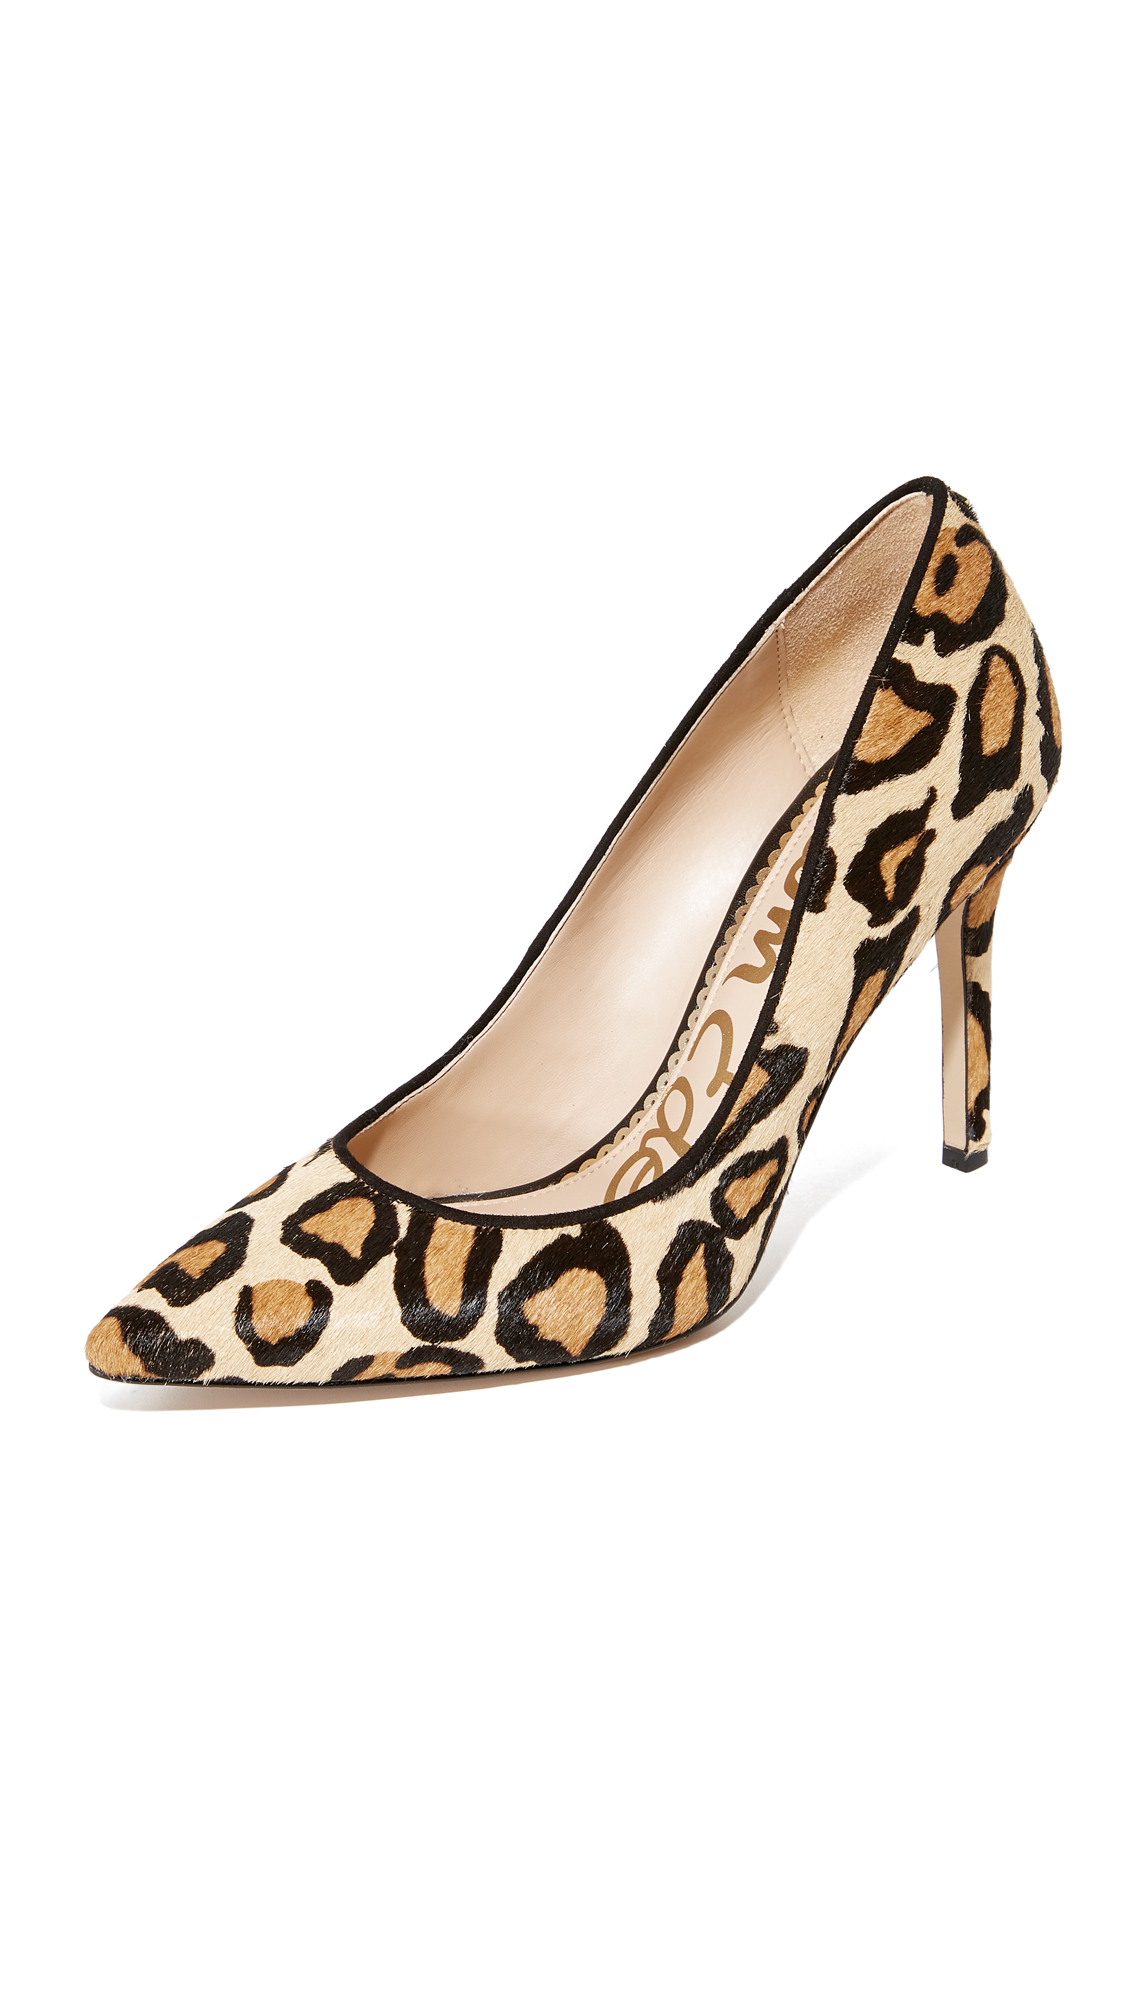 Sam Edelman Hazel Pumps - New Nude Leopard